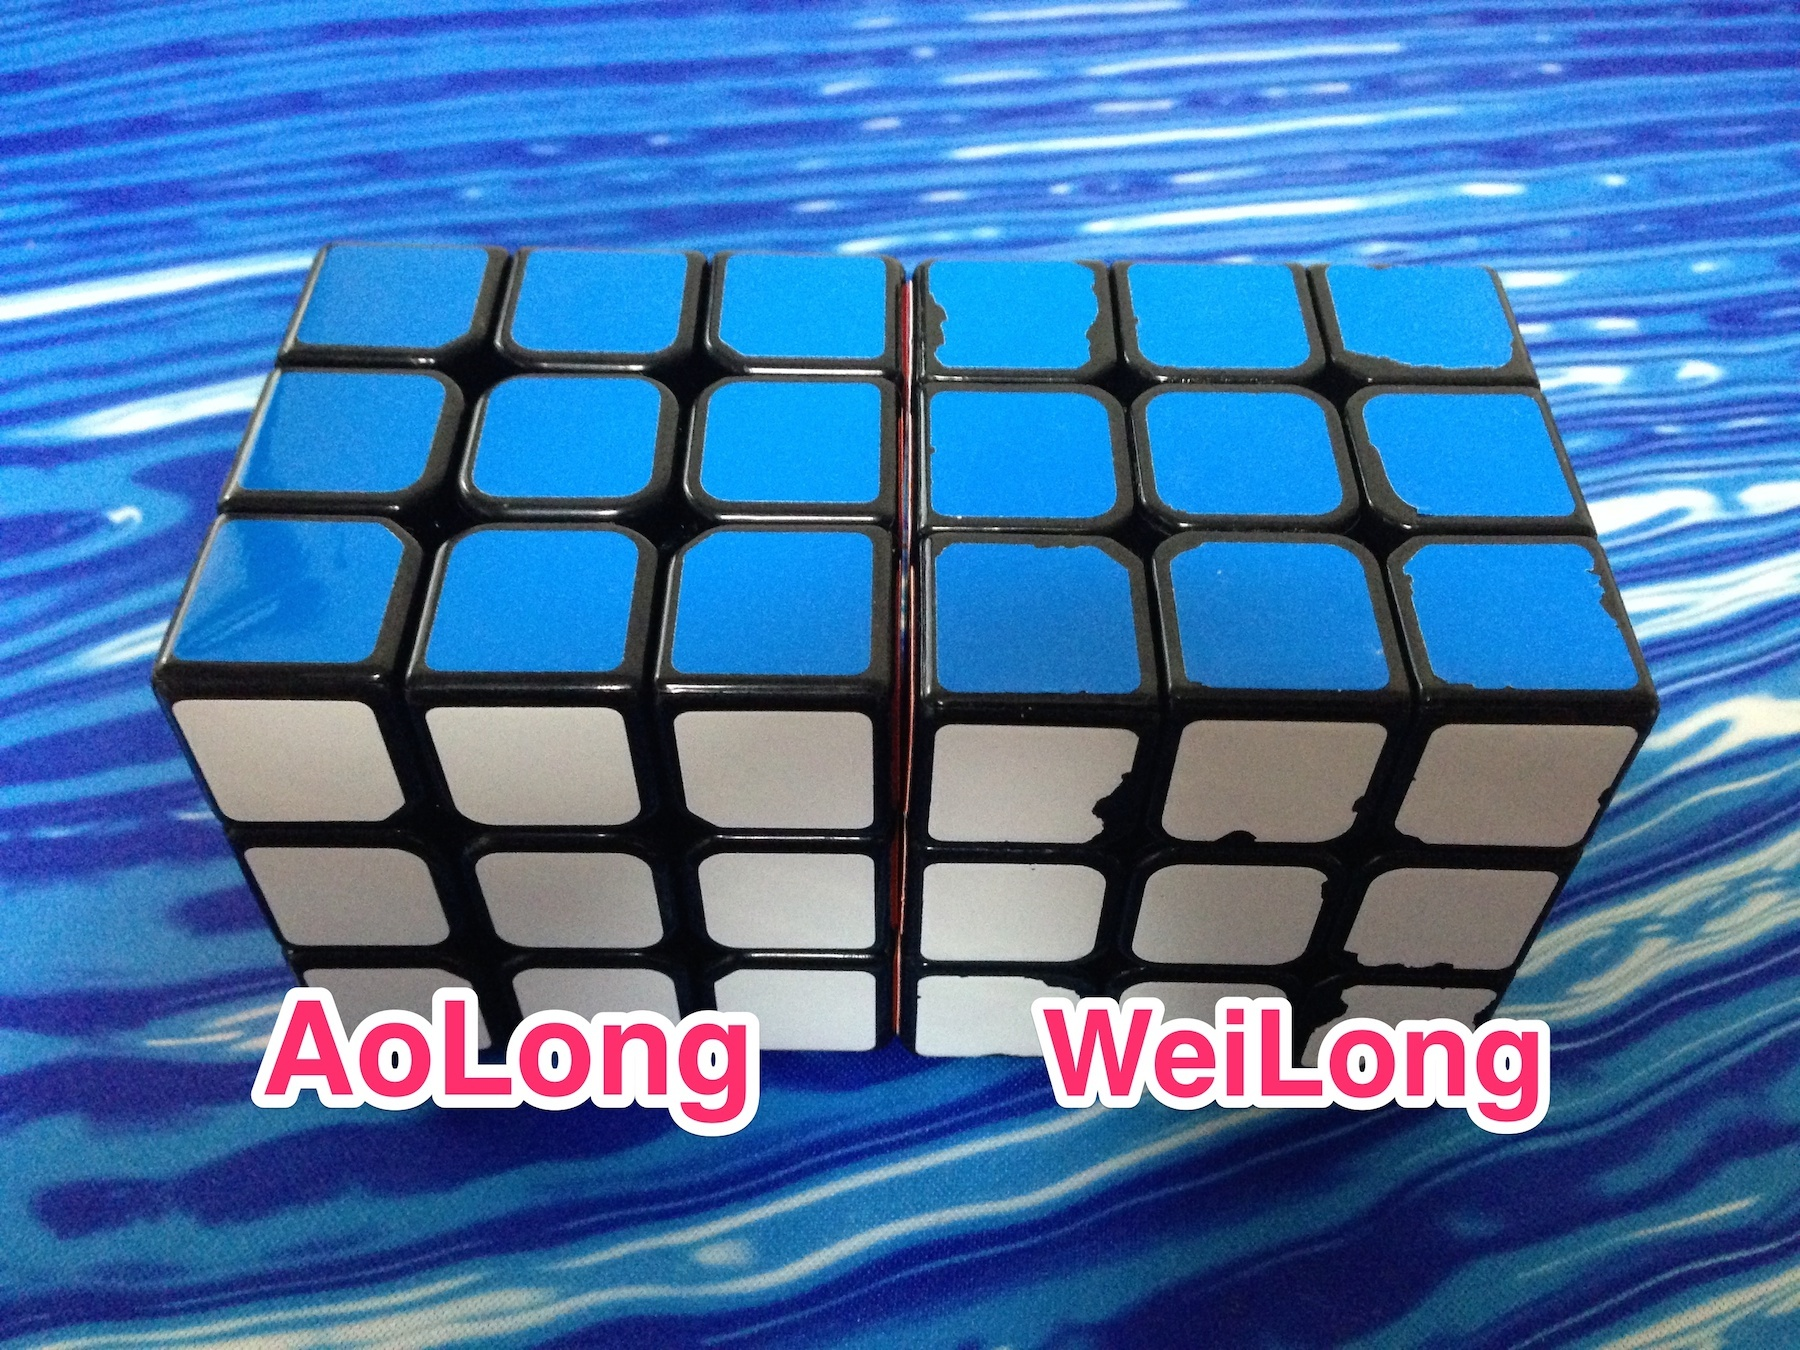 AoLong,WeiLong Comparison